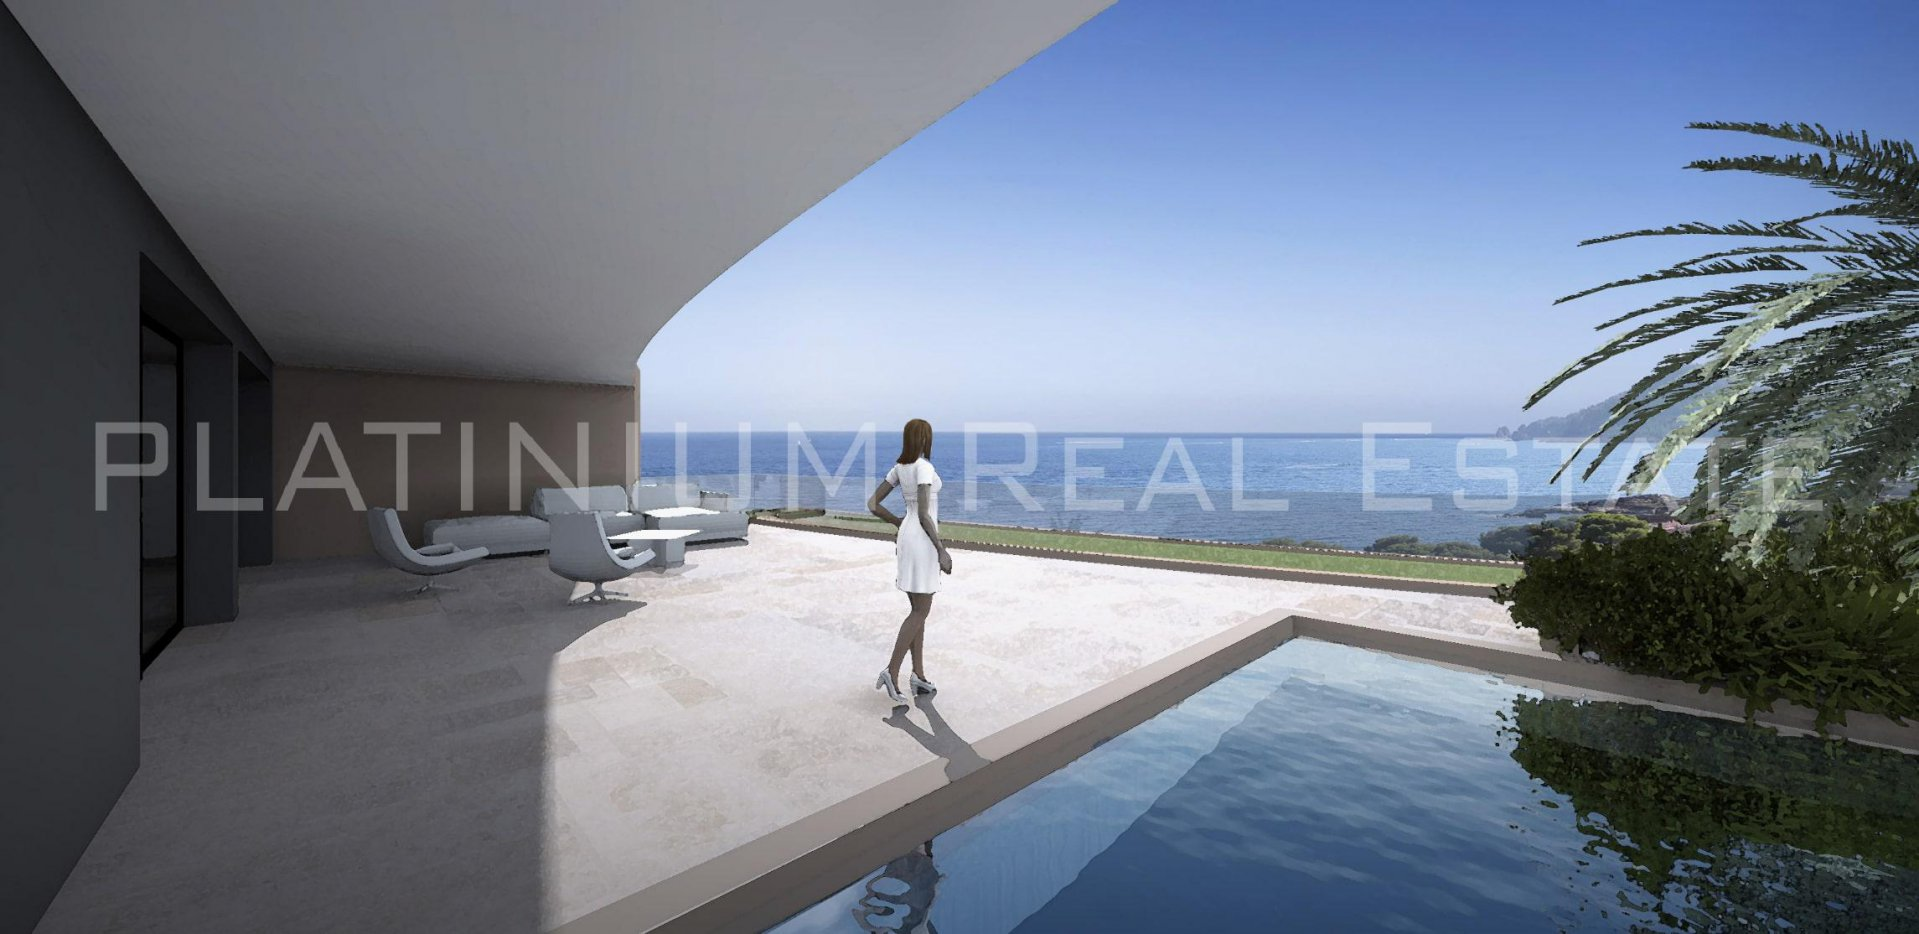 SAINT RAPHAEL Apartment 200m2 Panoramic sea view 3 bedrooms 115m2 Terrace Private pool